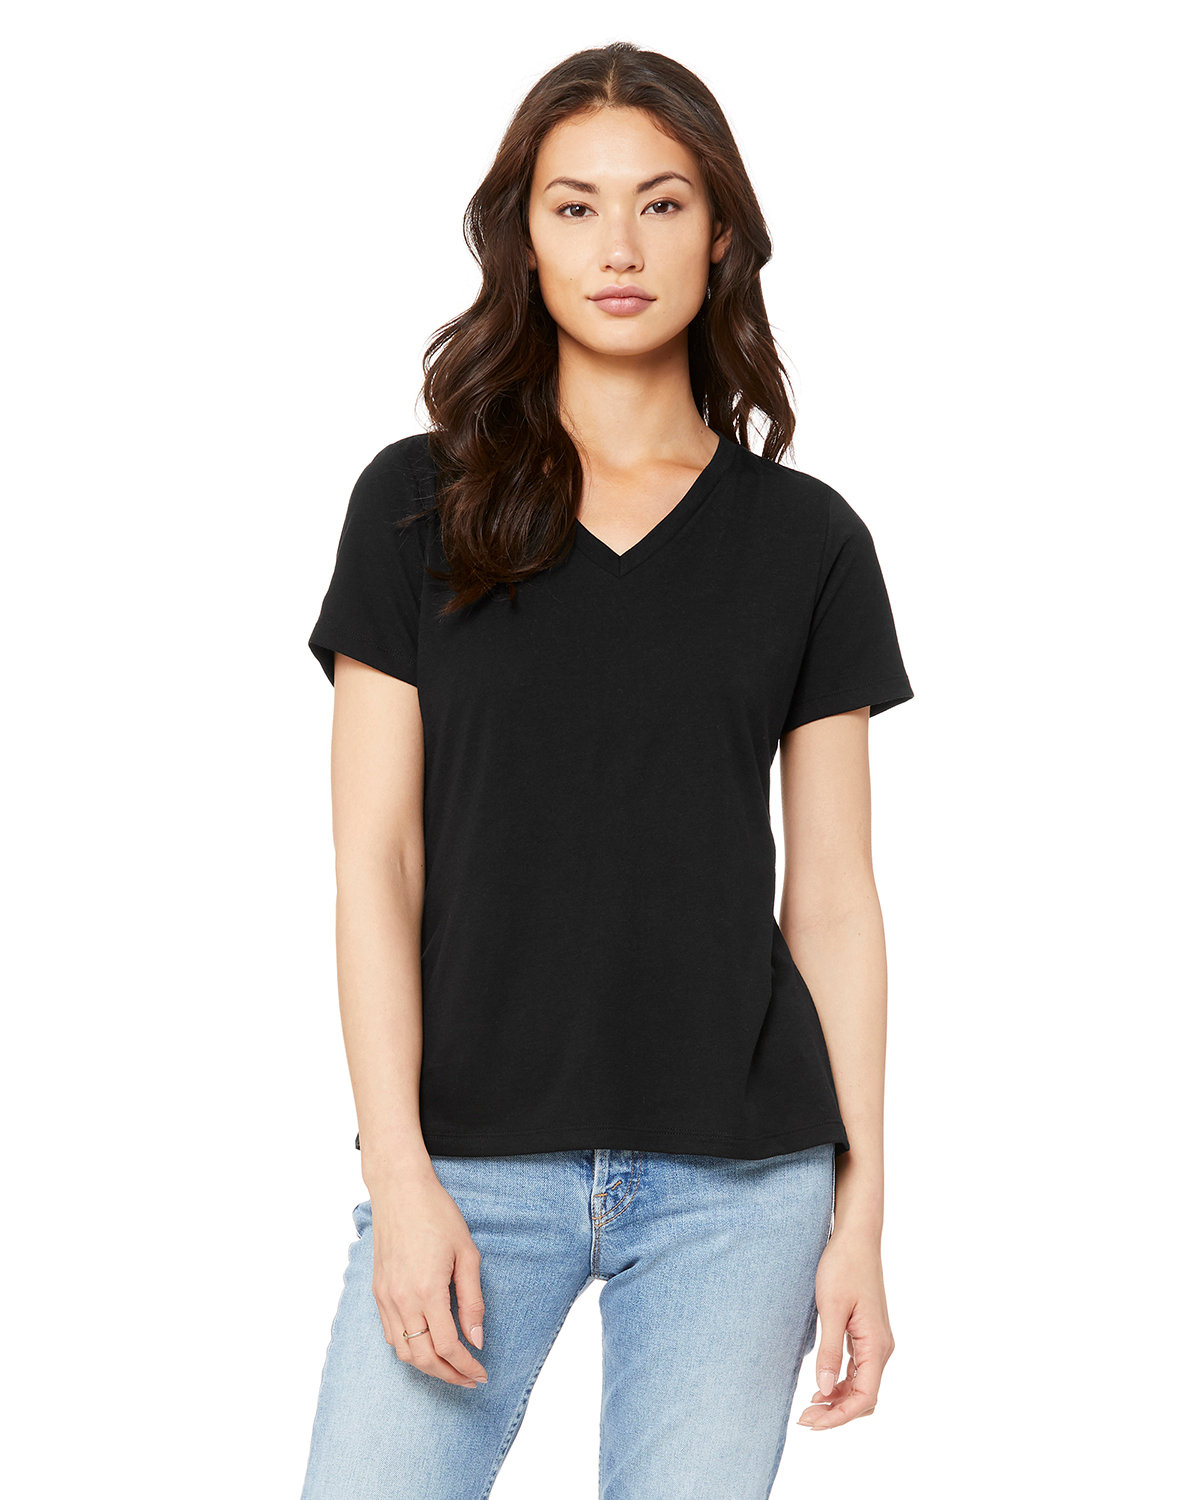 Bella + Canvas Ladies' Relaxed Jersey V-Neck T-Shirt SOLID BLK TRBLND